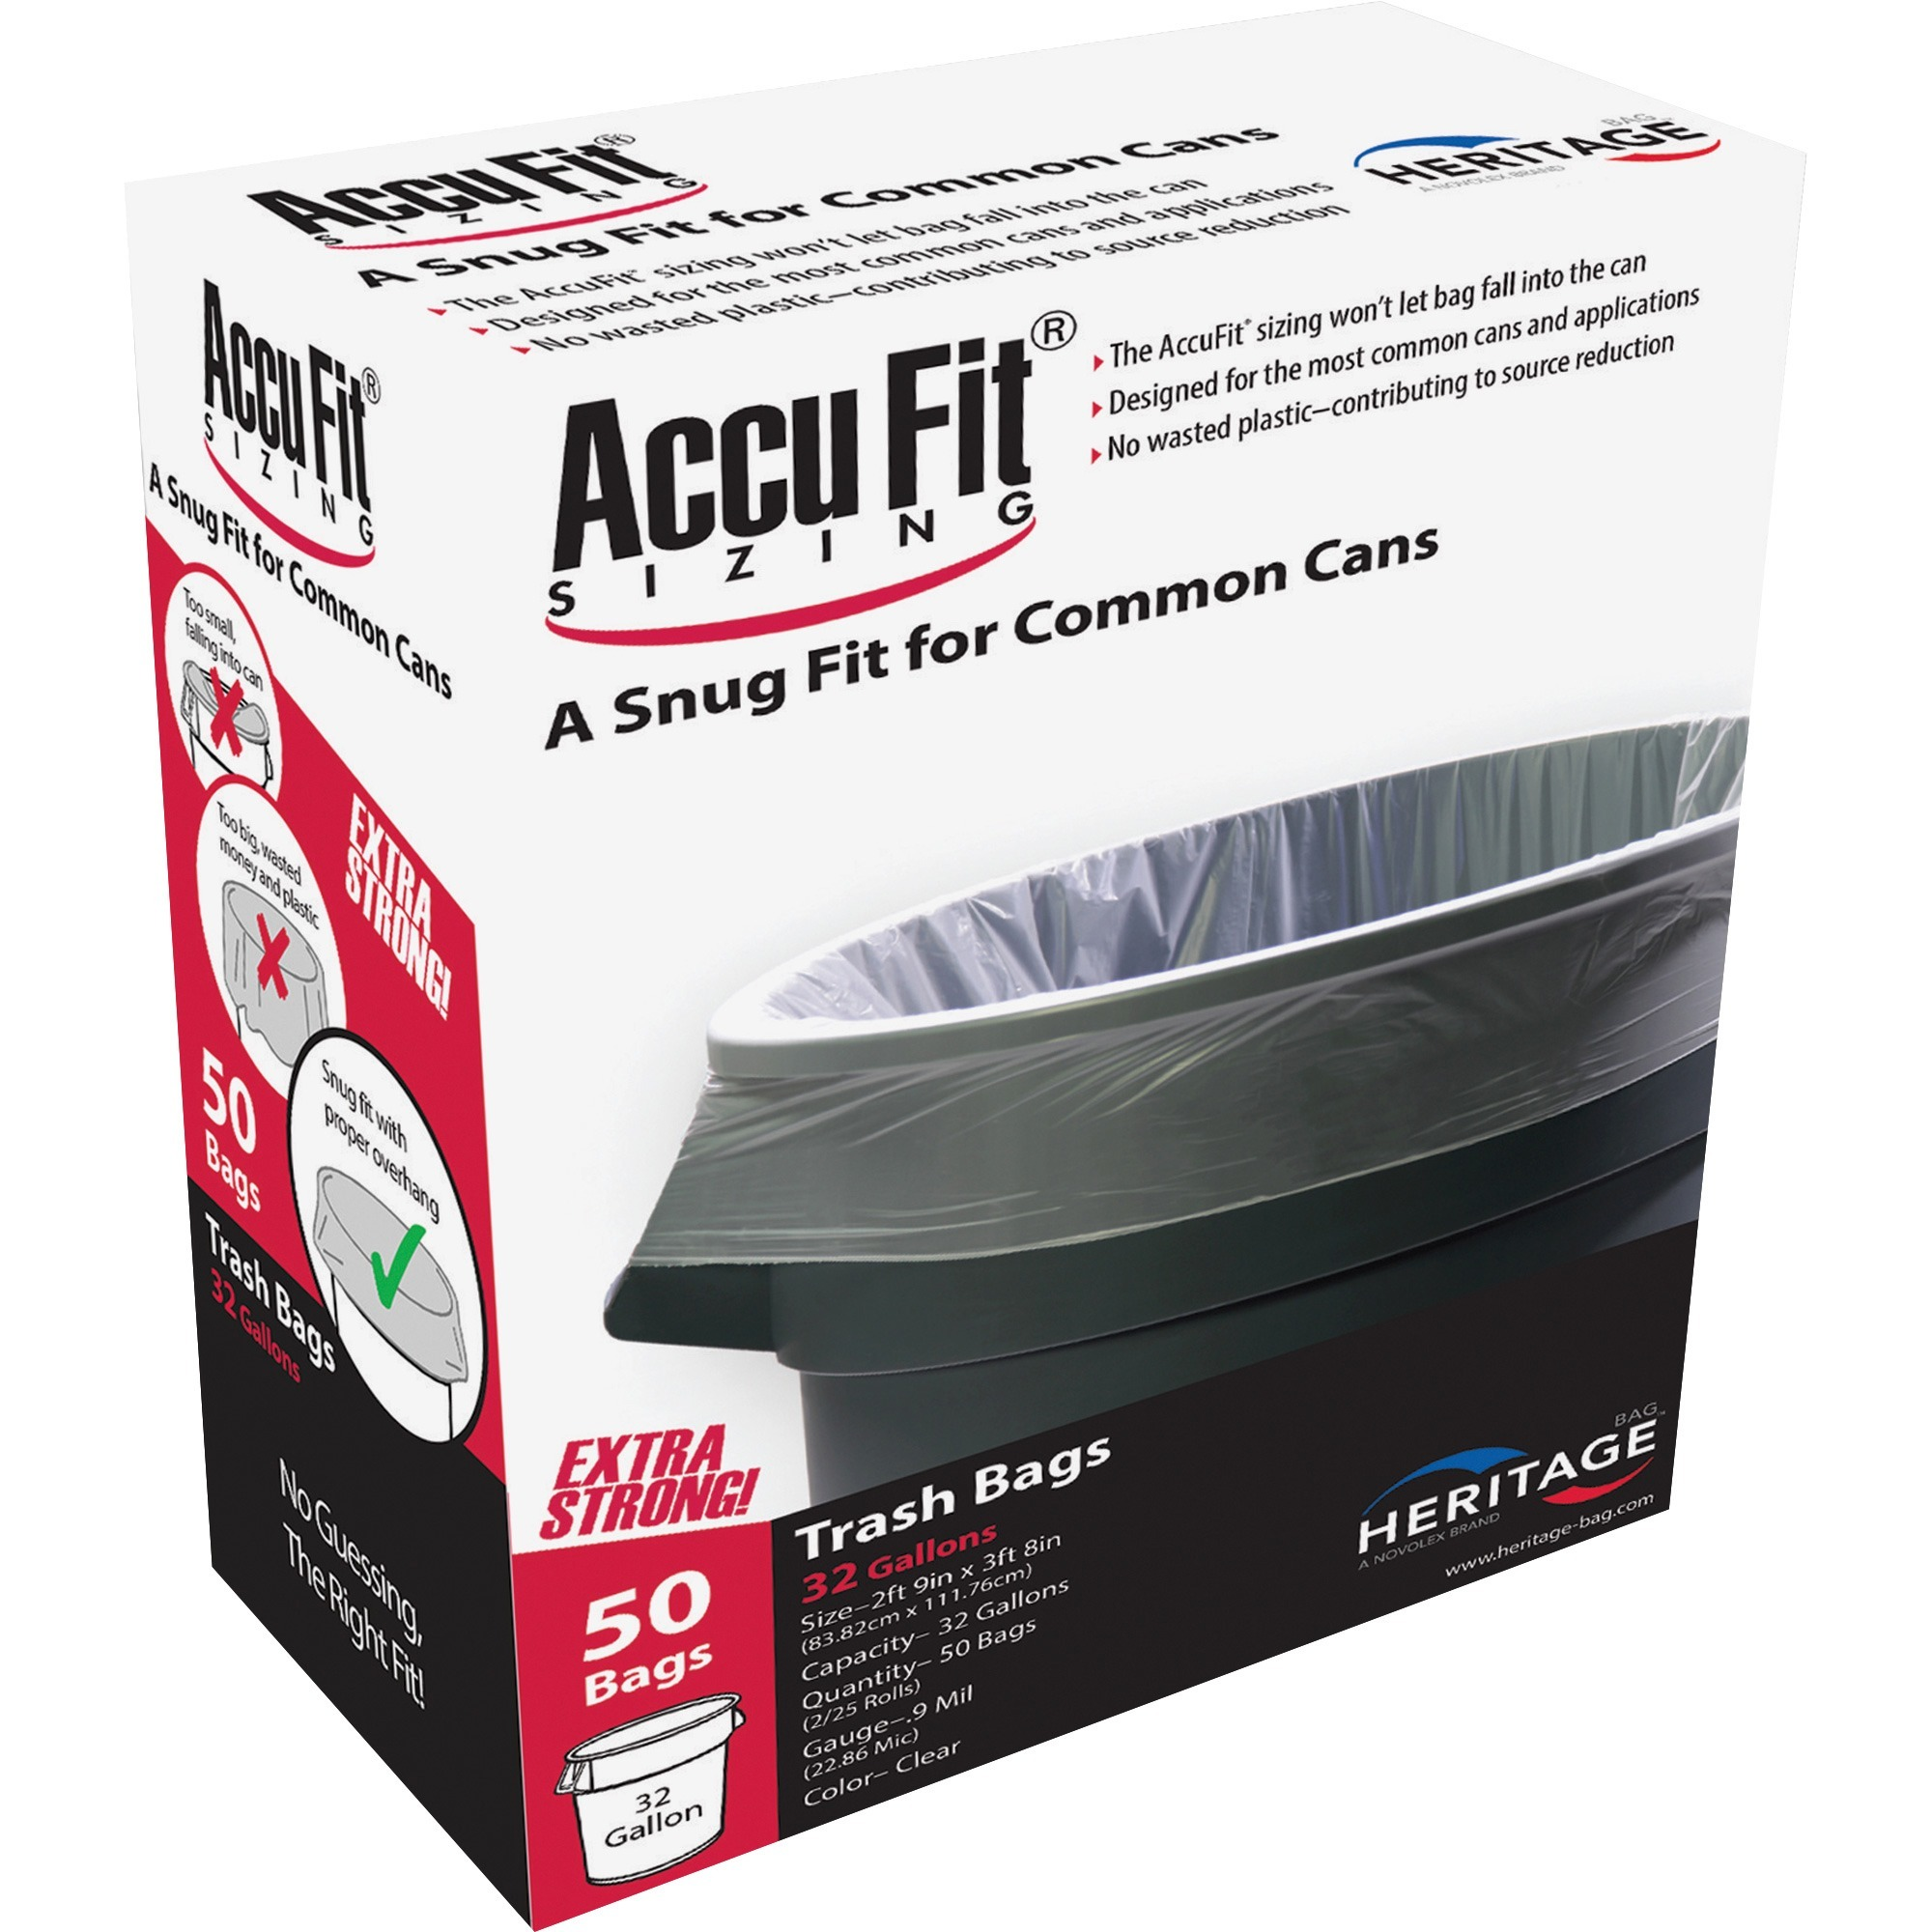 Heritage Accufit Reprime 32 Gallon Can Liners, Clear, 50 / Box (Quantity)